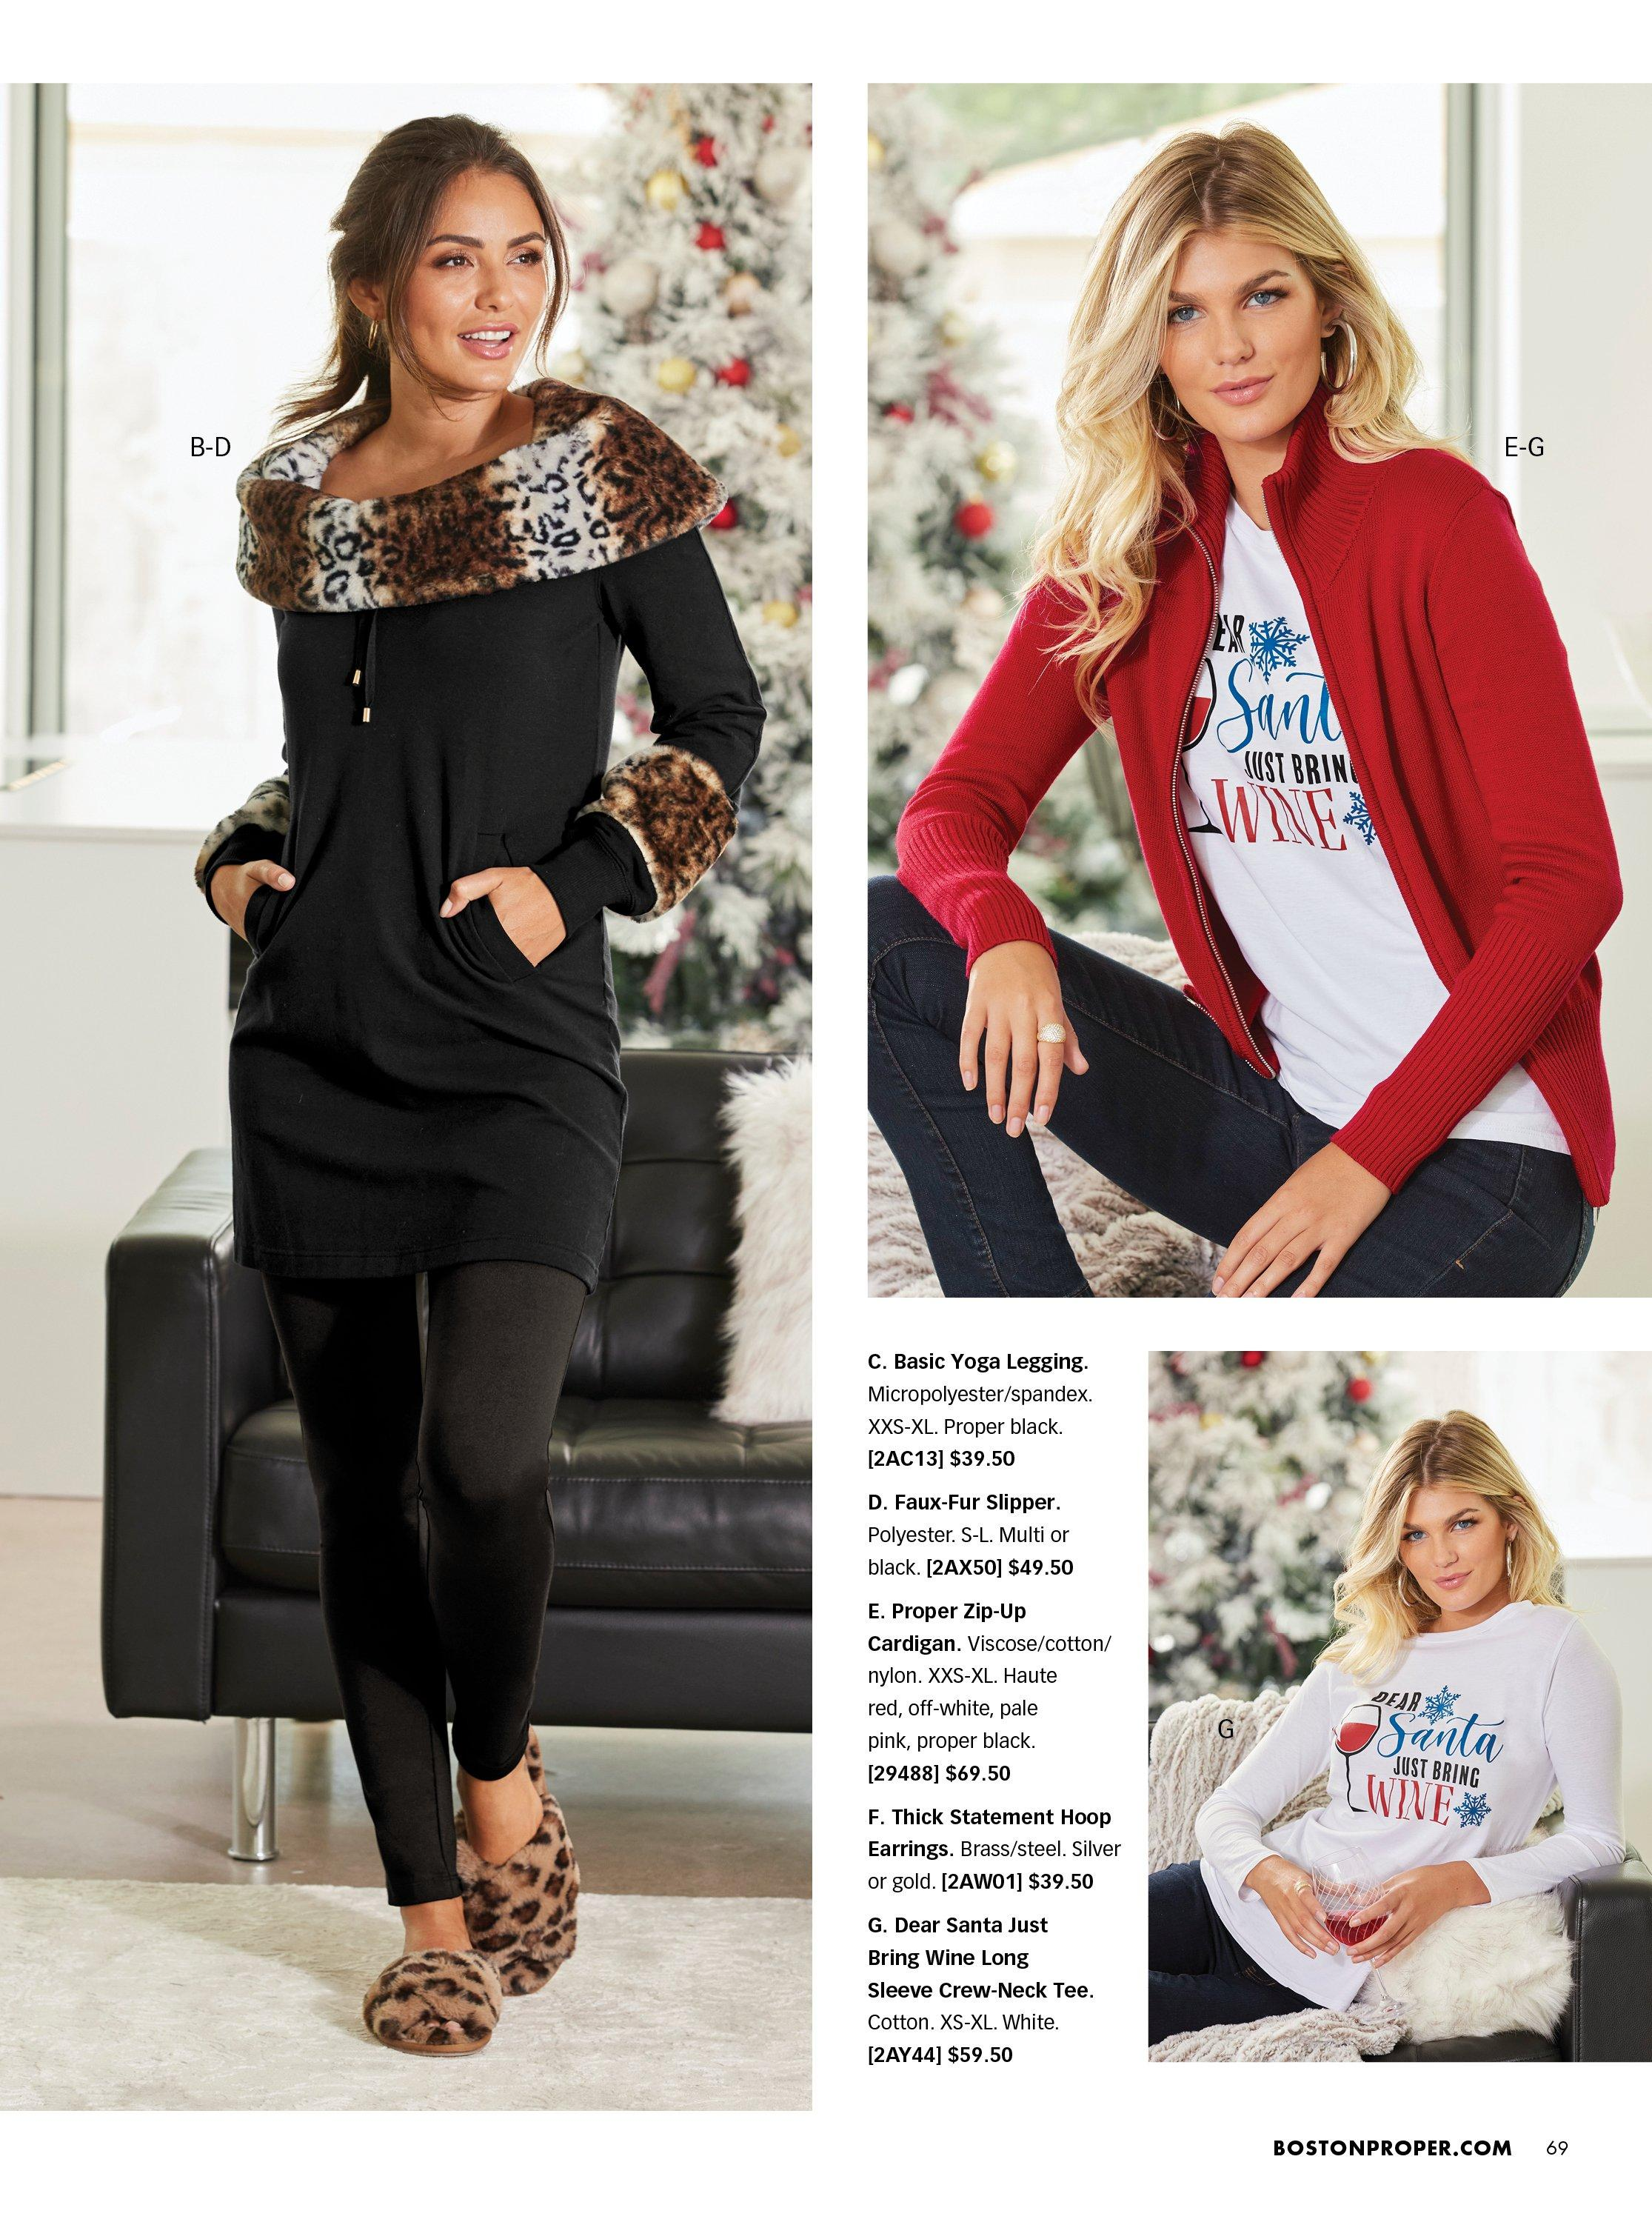 left model wearing a black off-the-shoulder leopard faux fur sweatshirt, black leggings, and leopard faux-fur slippers. top right model wearing a white long-sleeve santa graphic tee, red zip-up cardigan, and jeans. bottom right model wearing a white long-sleeve santa graphic tee.